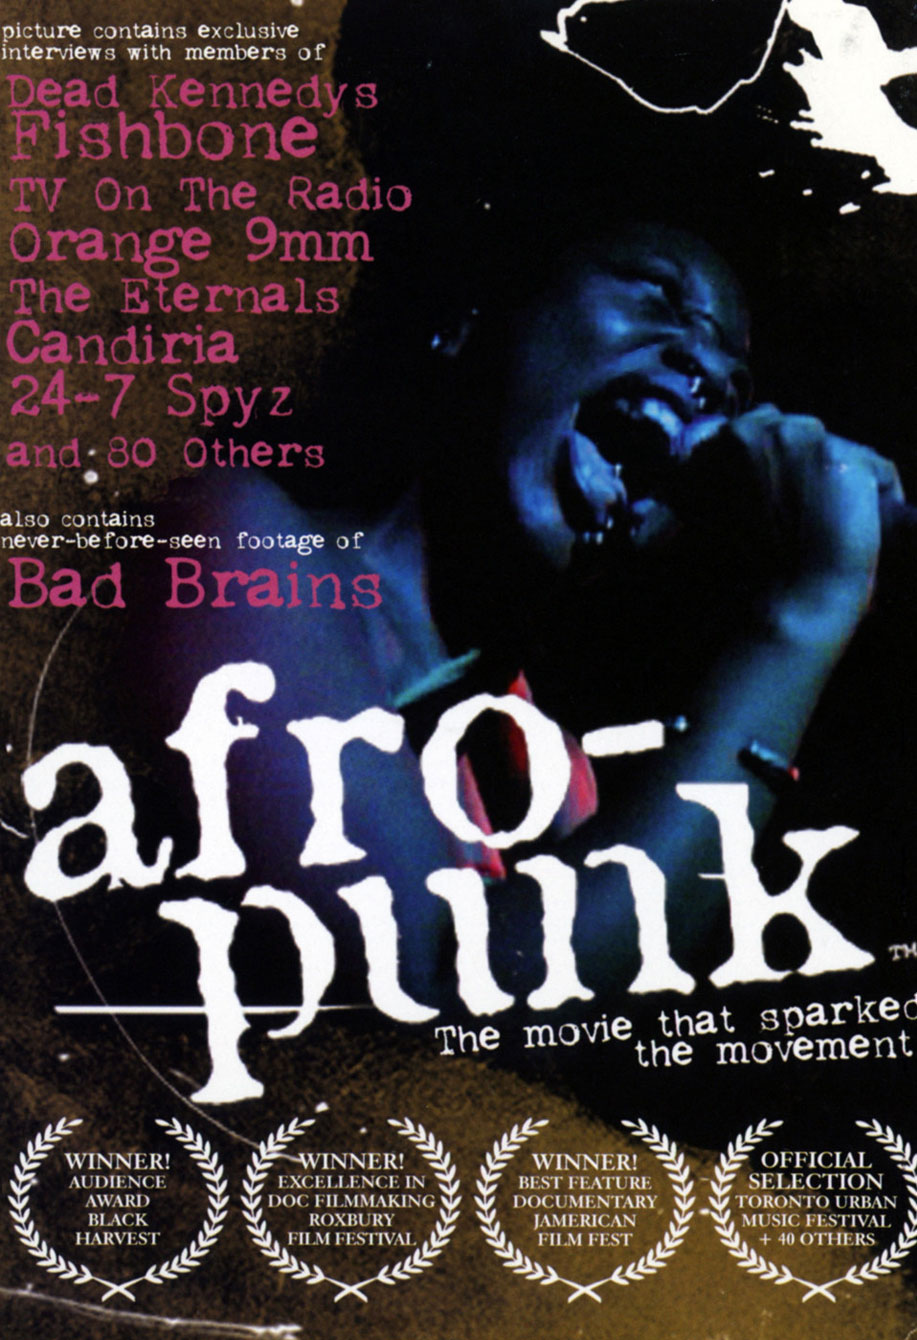 AFROPUNK, DOCUMENTArY 2007 - Film, Music & Soundtrack